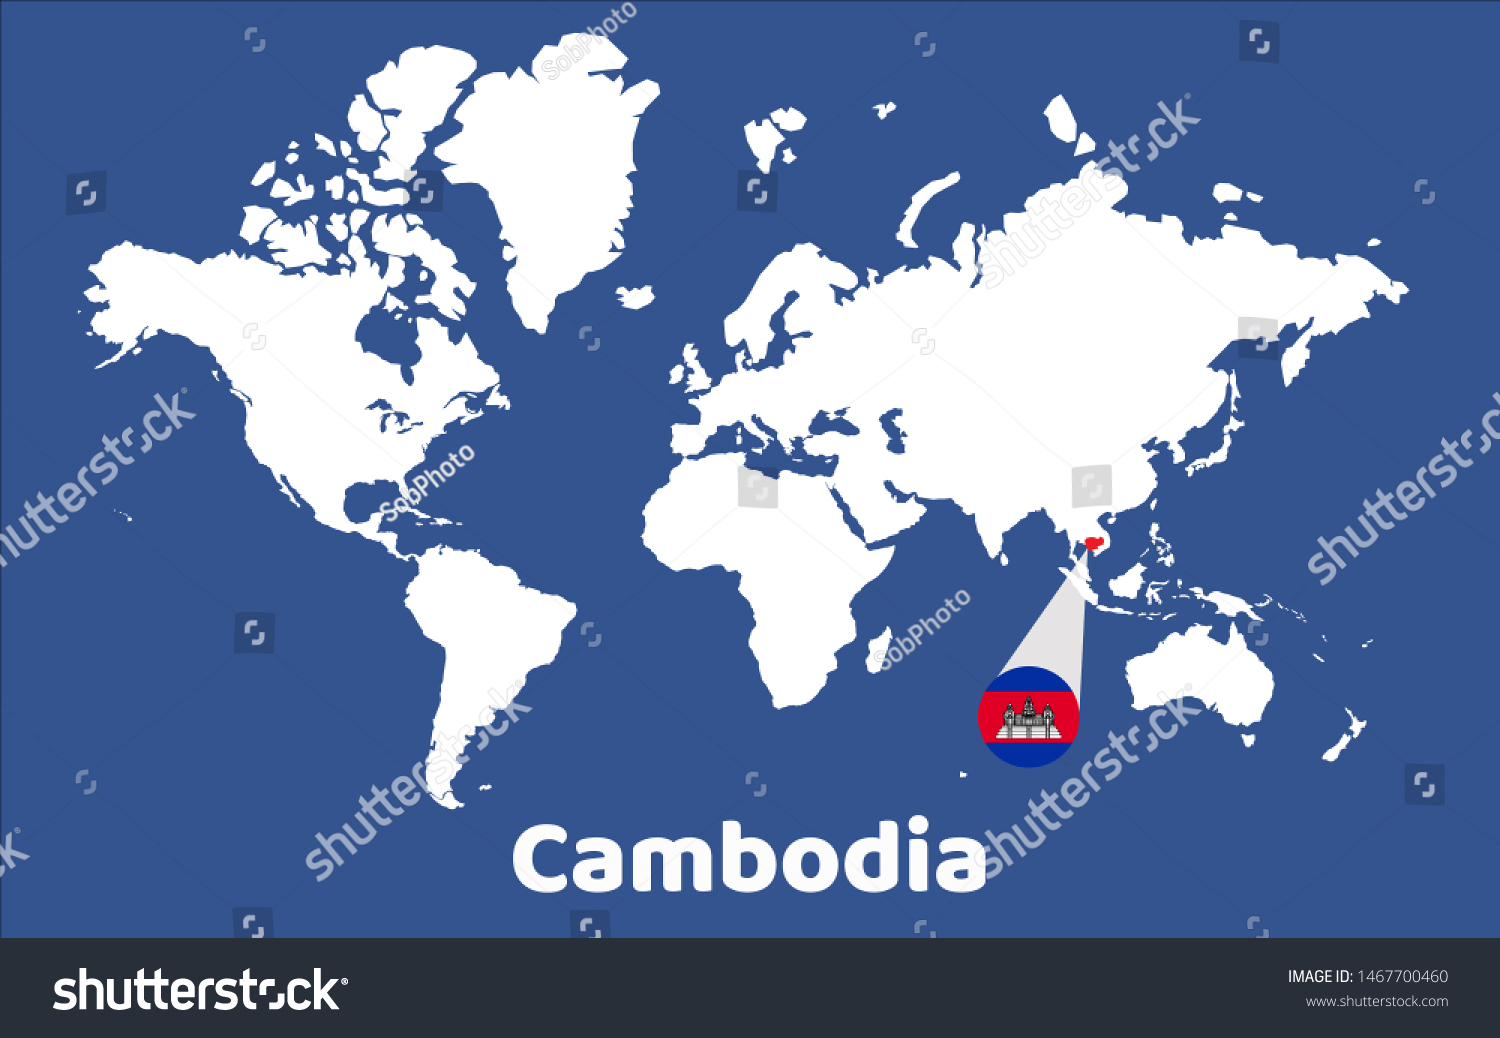 World Map Magnifying On Cambodia | Royalty-Free Stock Image